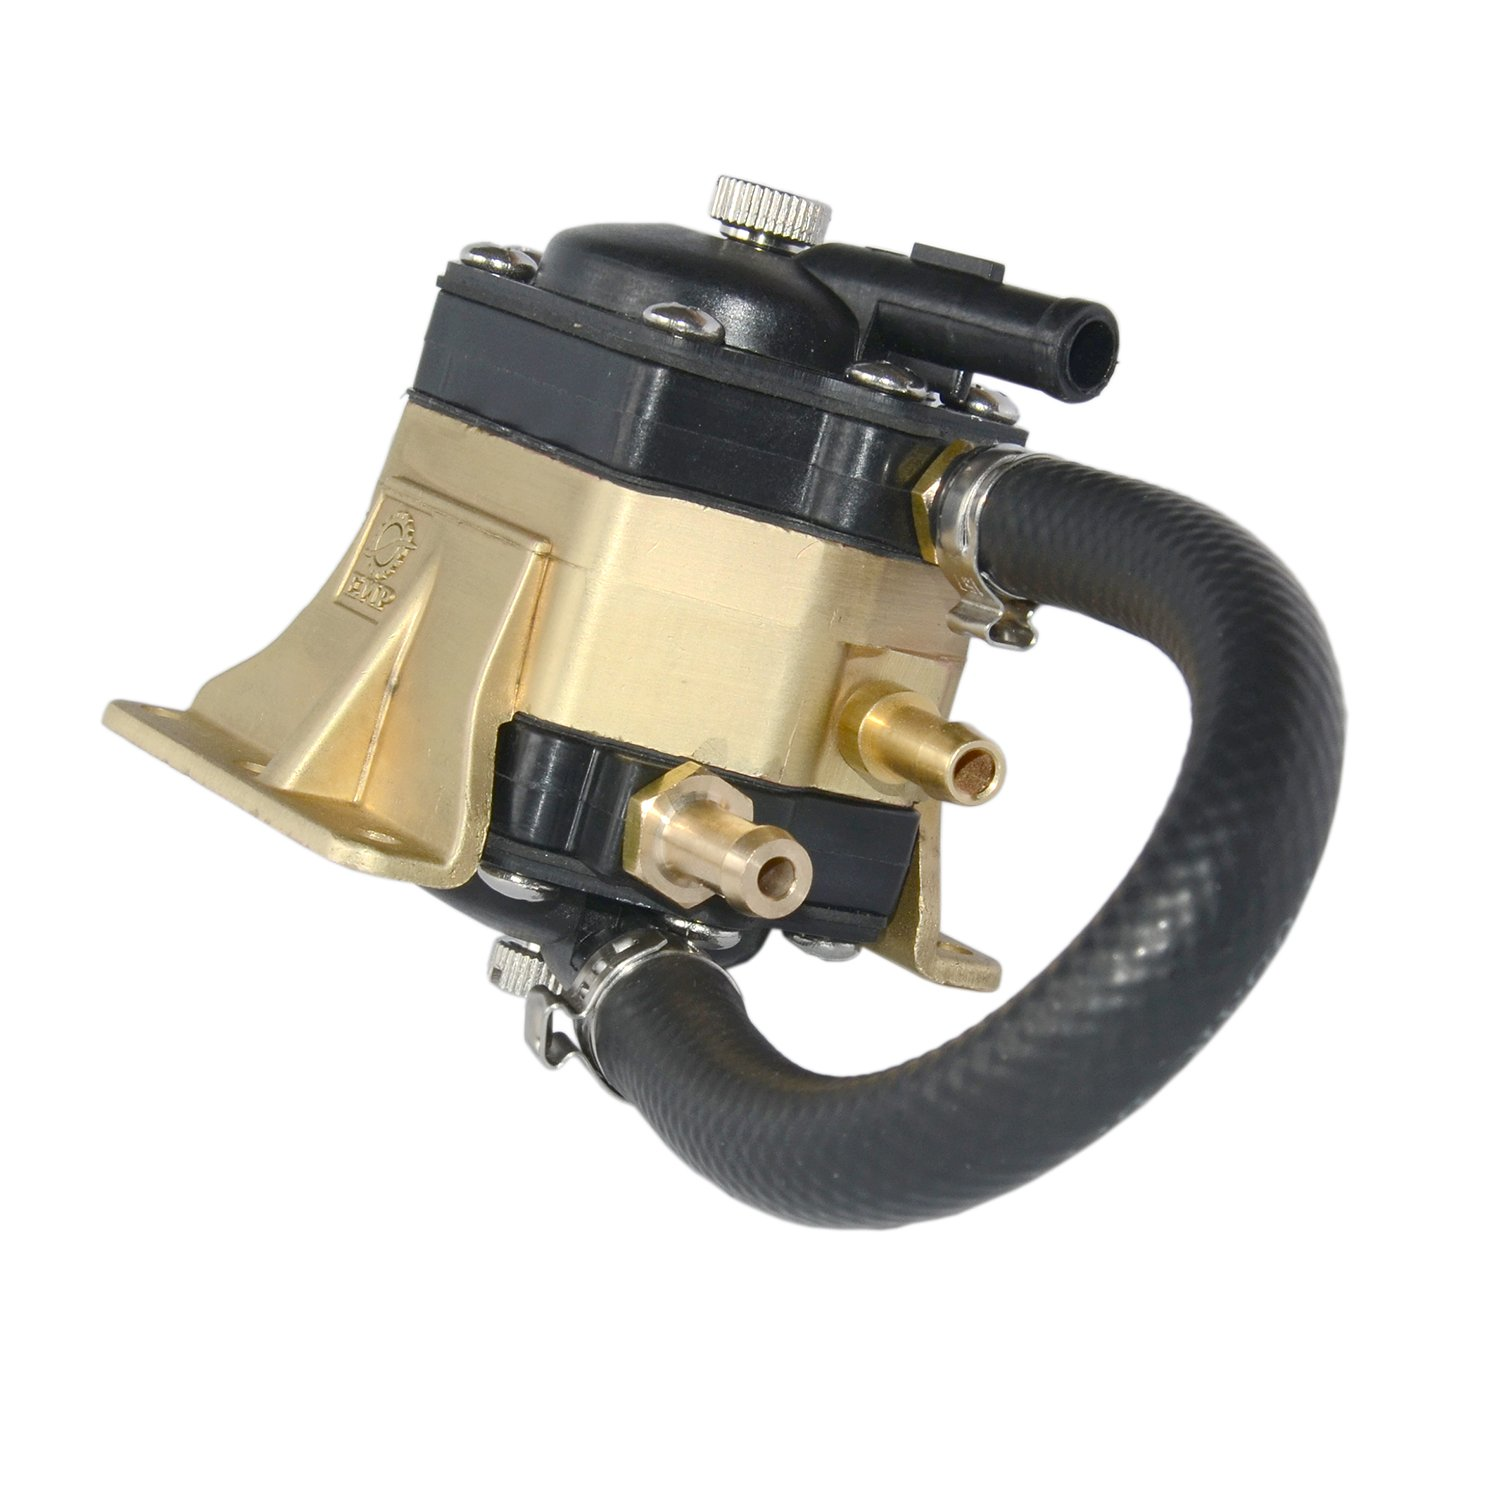 VRO Oil Injection Conversion Fuel Pump Kit for Johnson Evinrude 5007420 5007422 GELUOXI